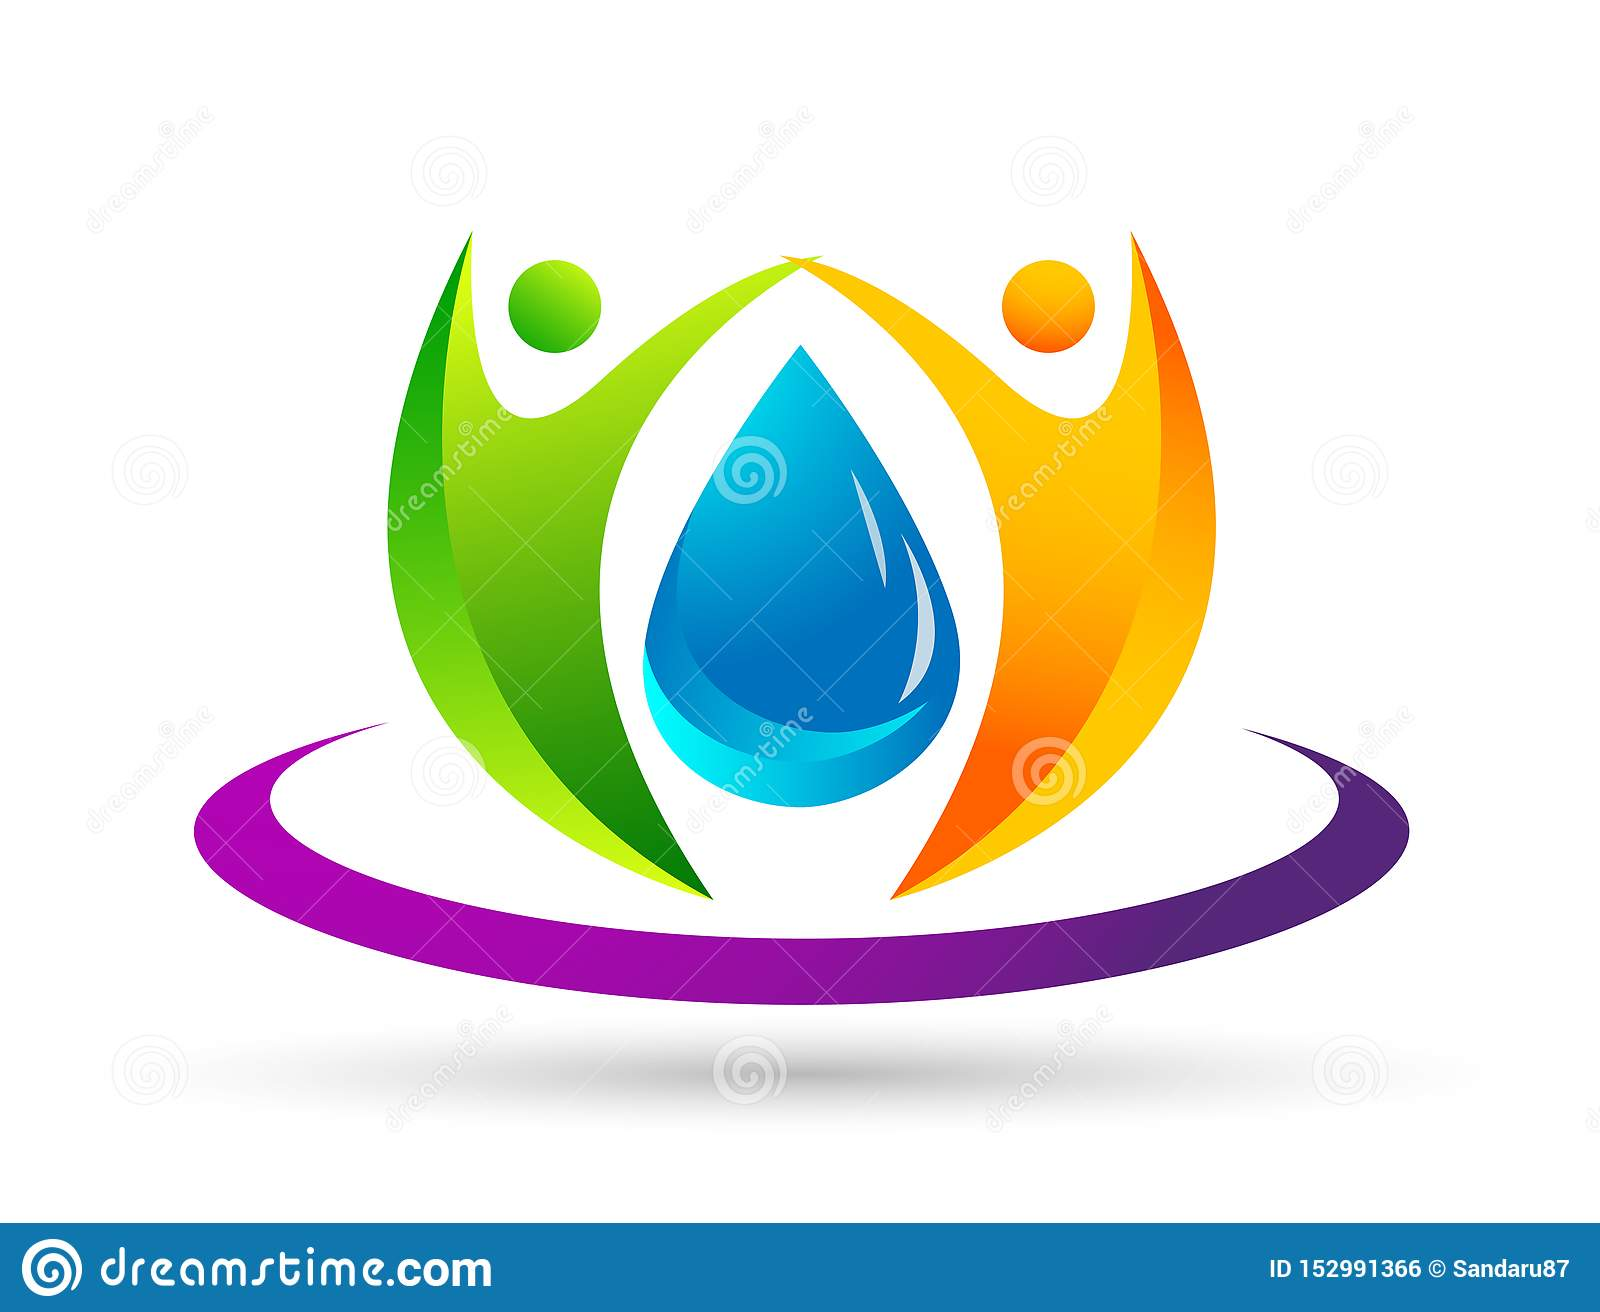 Water drop save water globe people life care logo concept of water drop wellness symbol icon nature drops elements vector design